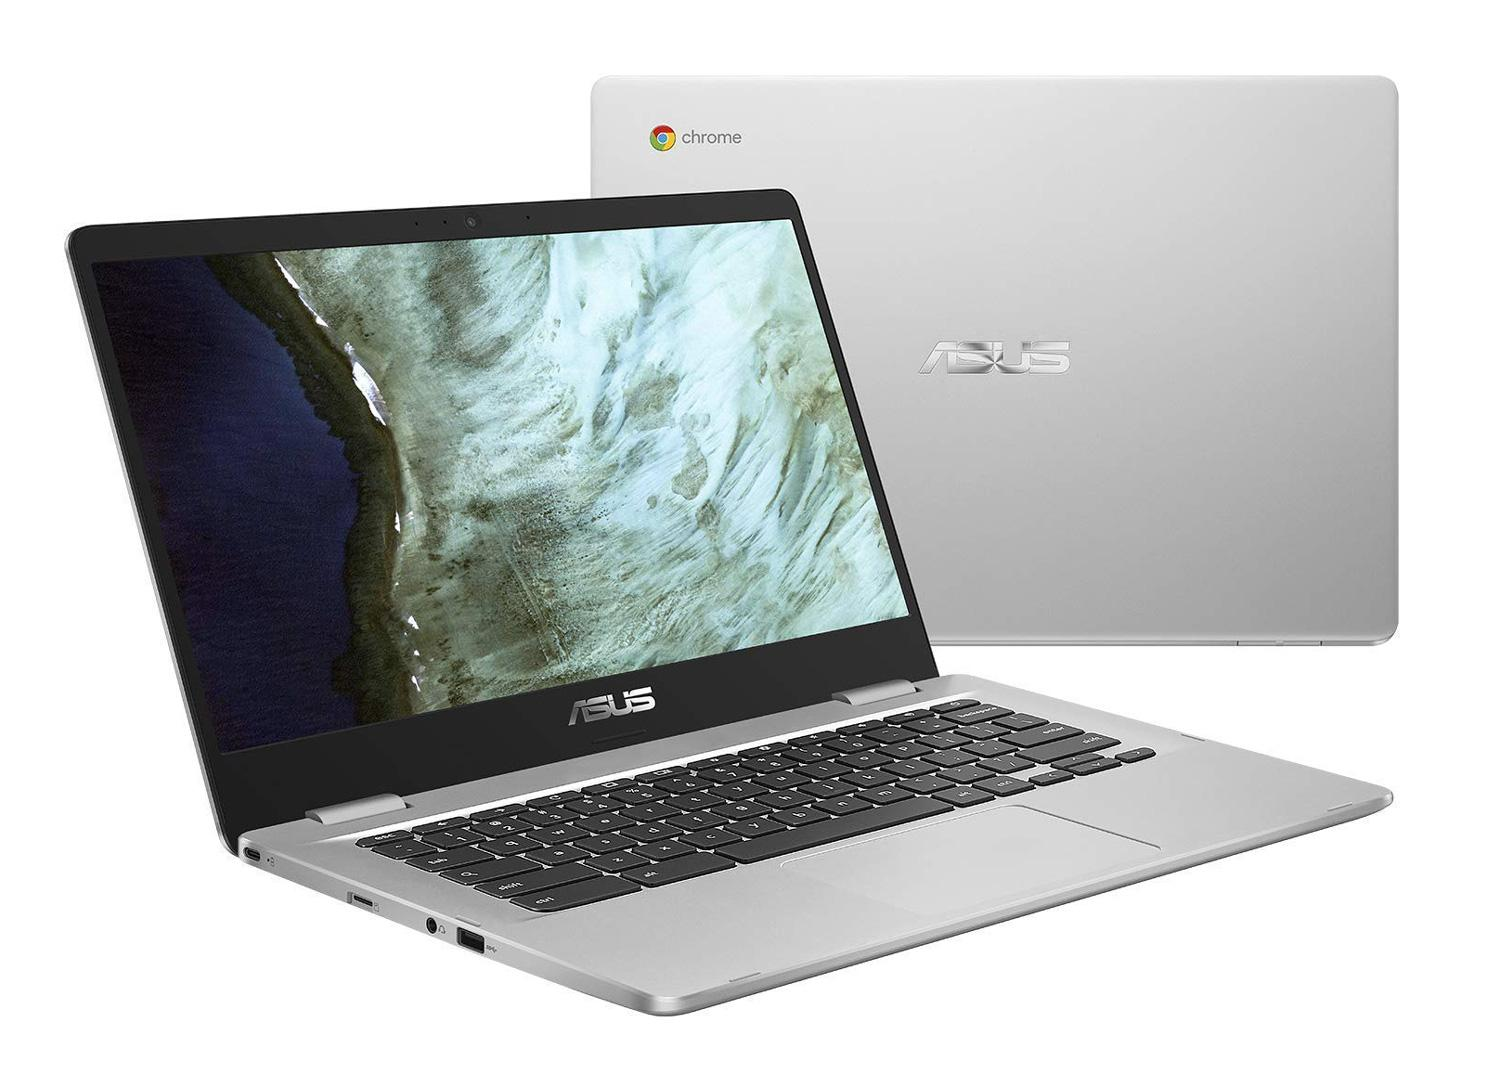 Image du PC portable Asus Chromebook C423NA-BV0047 Argent - (Chrome OS)